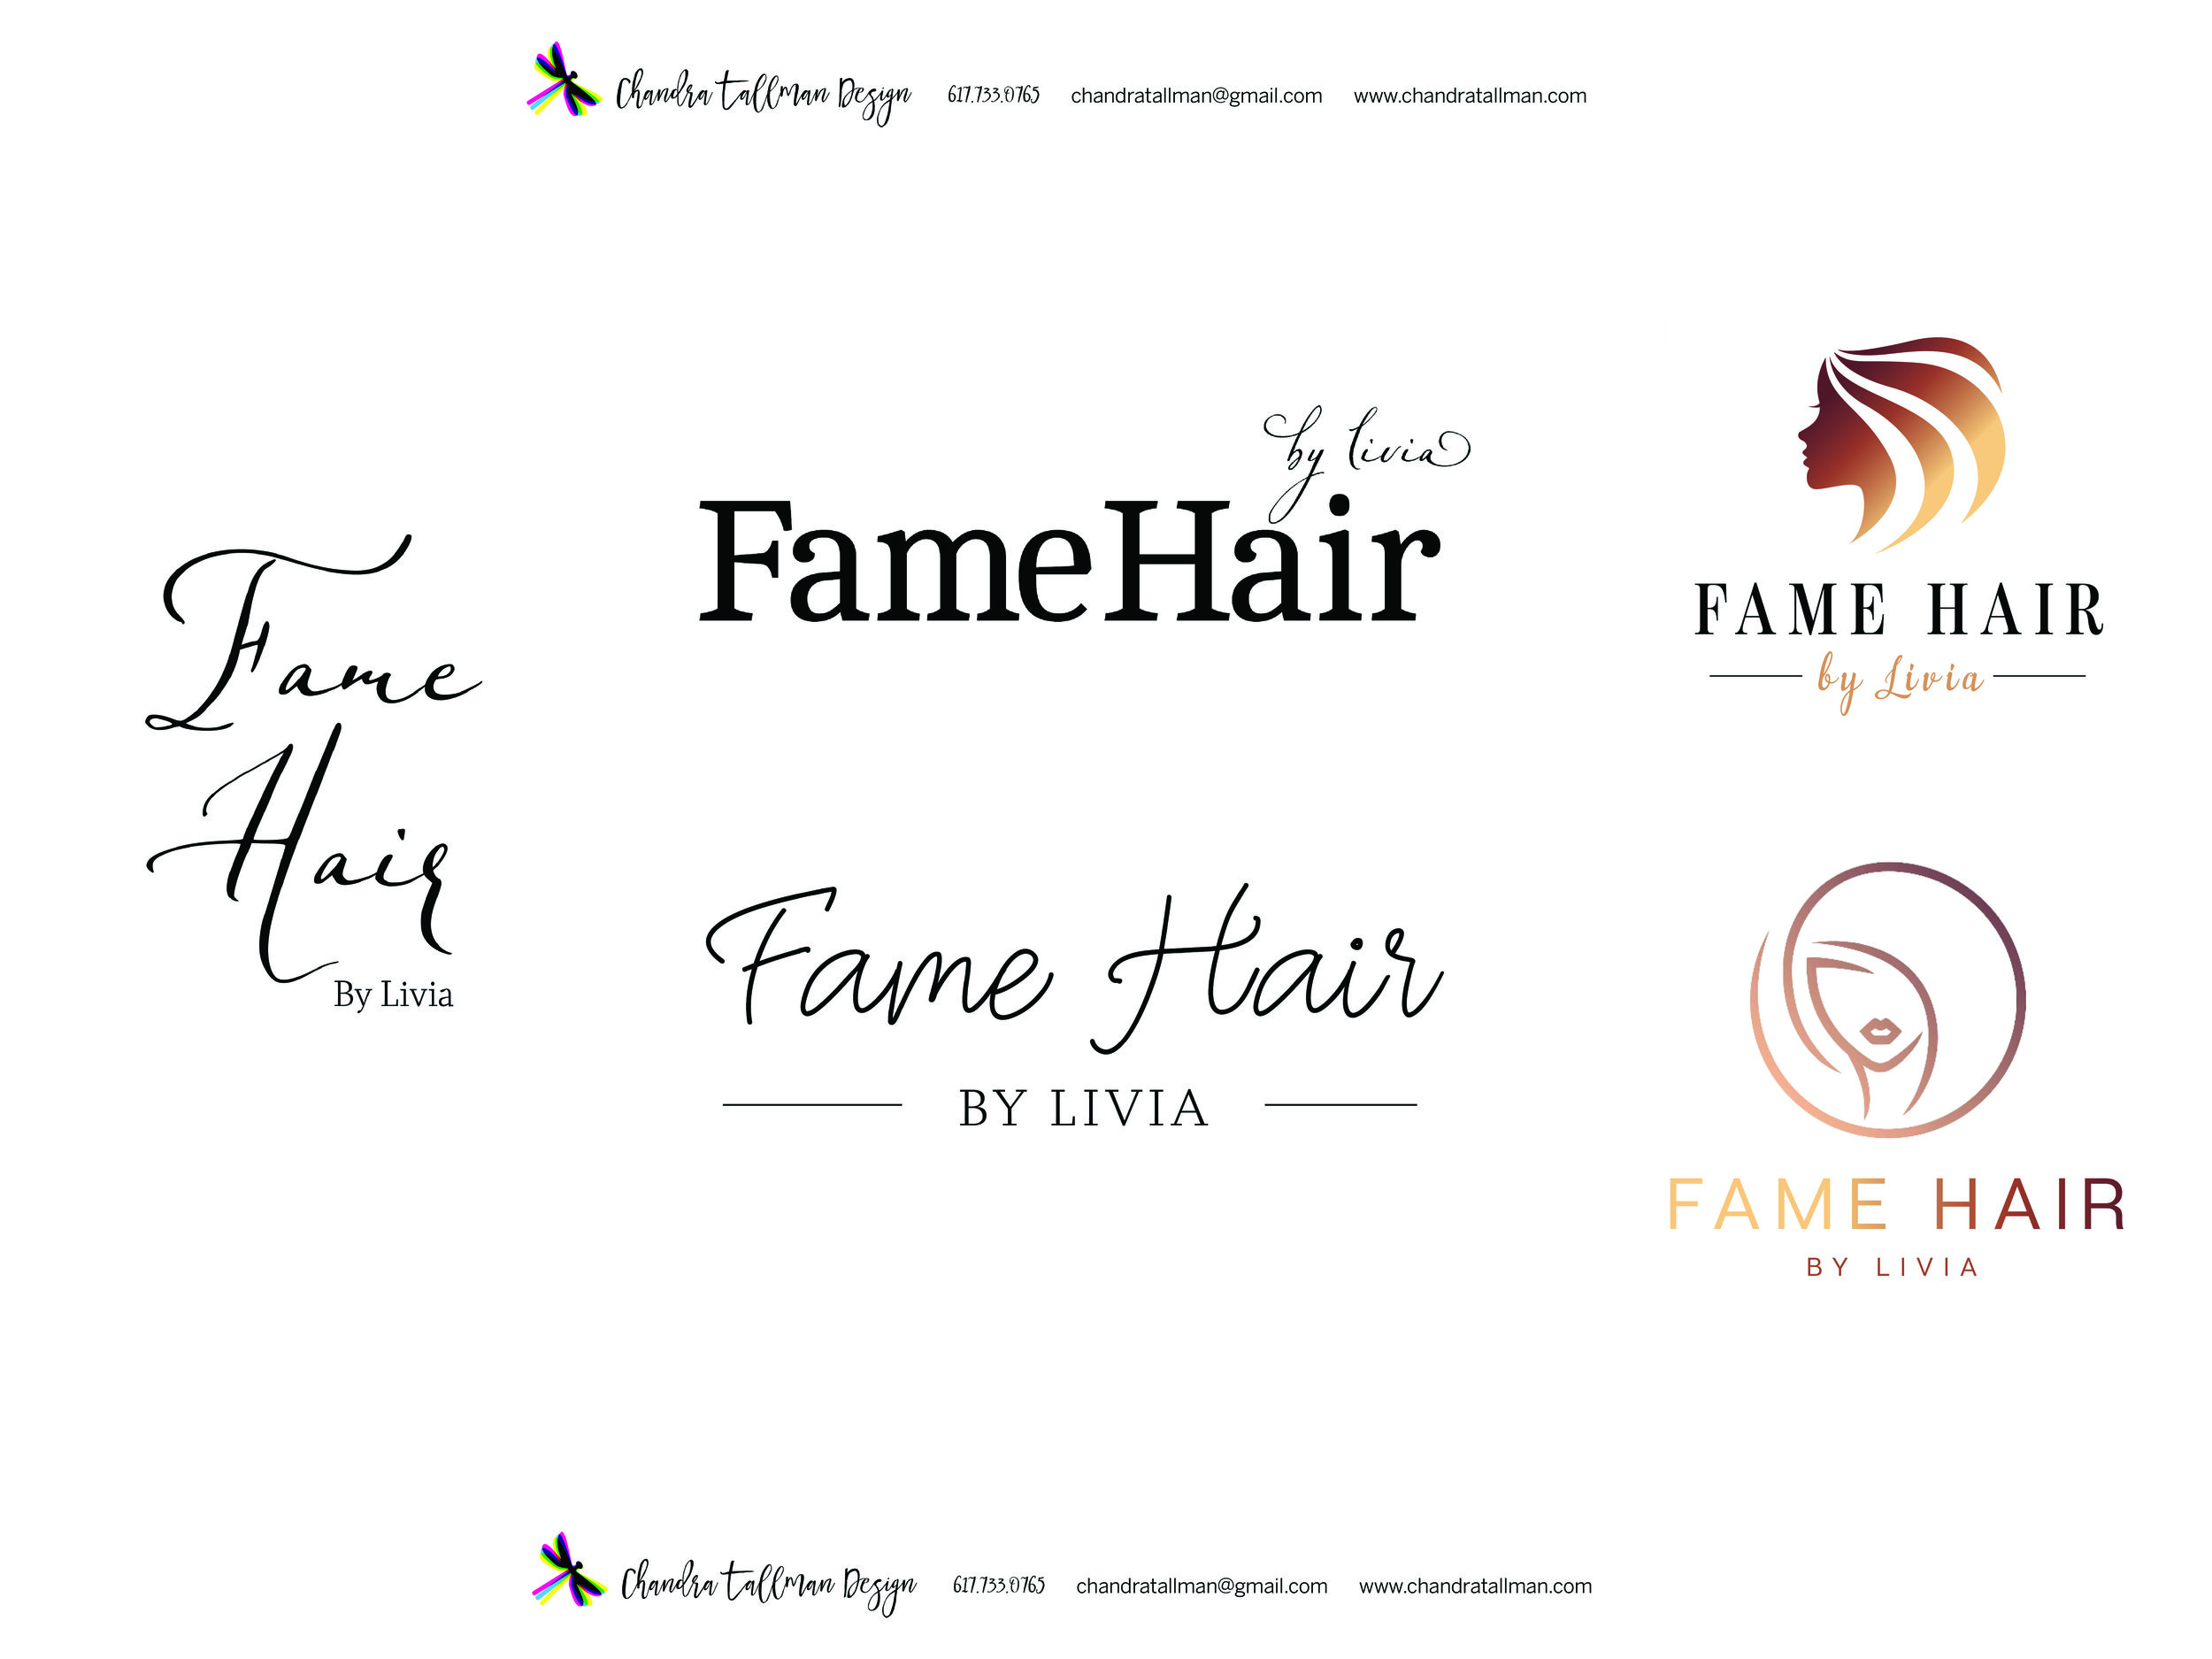 FameHairRound1_ByChandraTallmanDesign.jpg